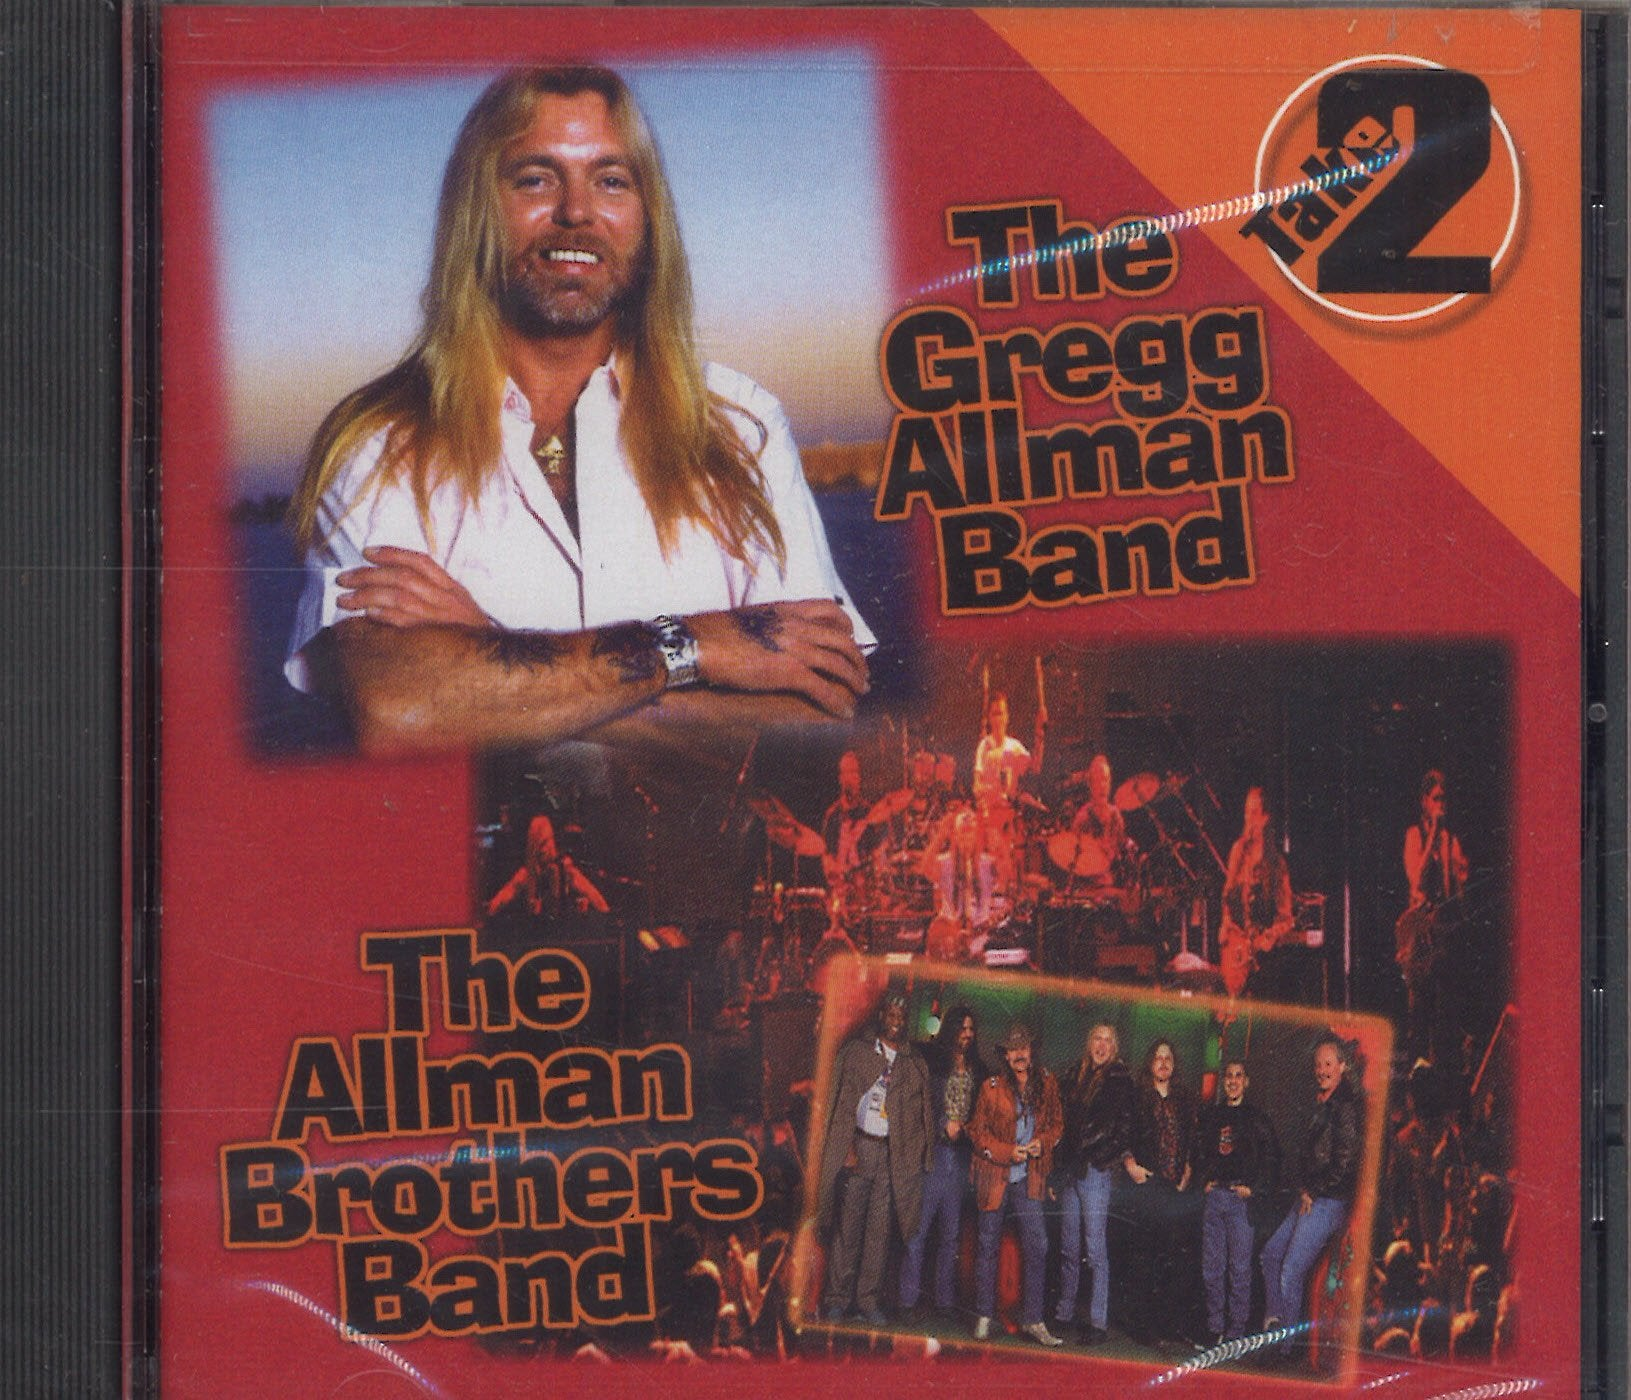 The Gregg Allman Band & The Allman Brothers Band Take 2